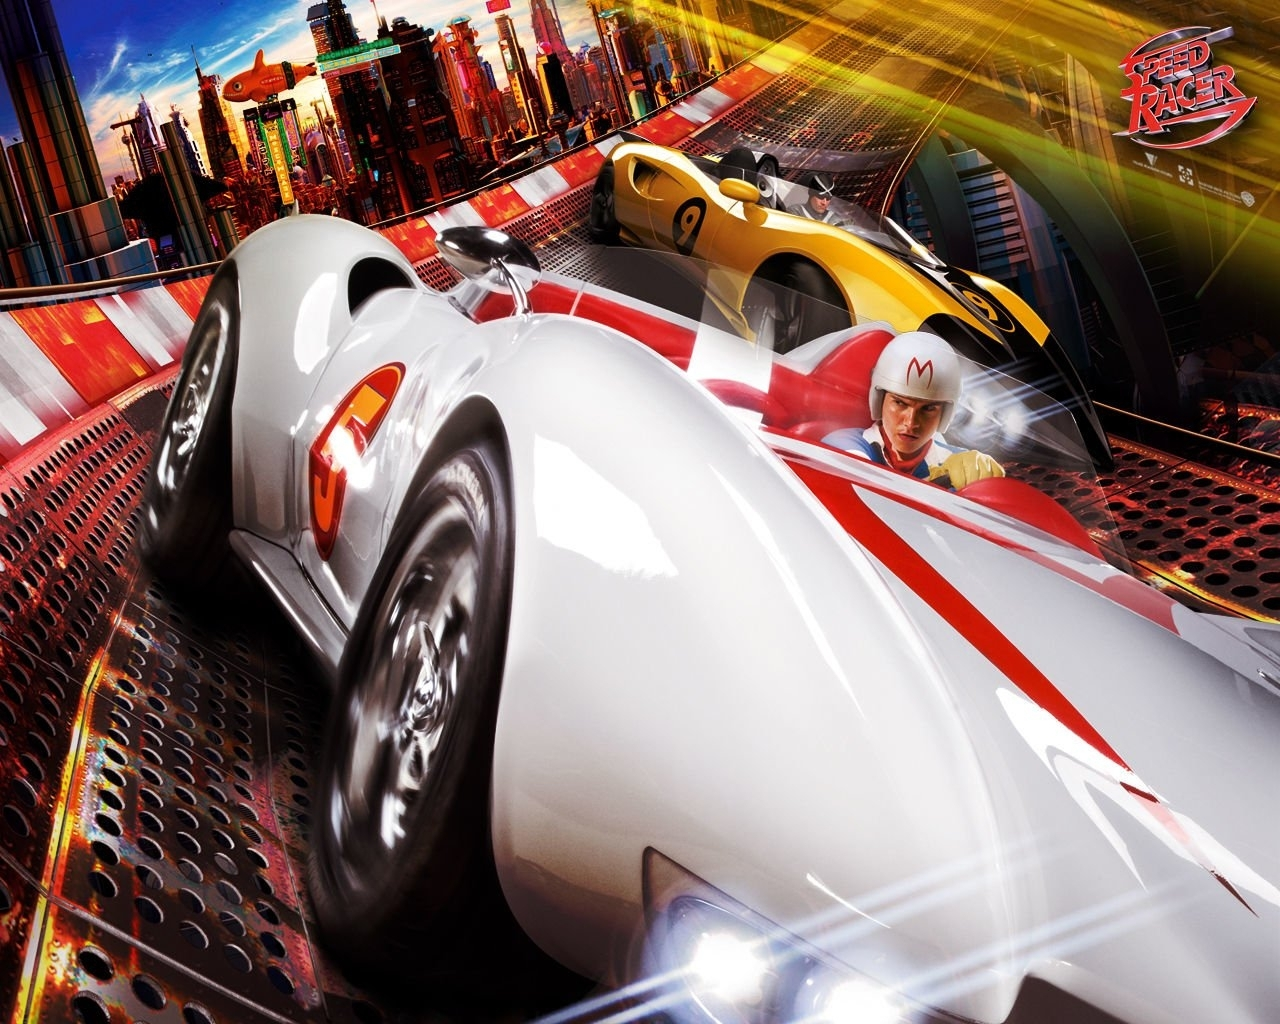 6 speed racer hd wallpapers | background images - wallpaper abyss